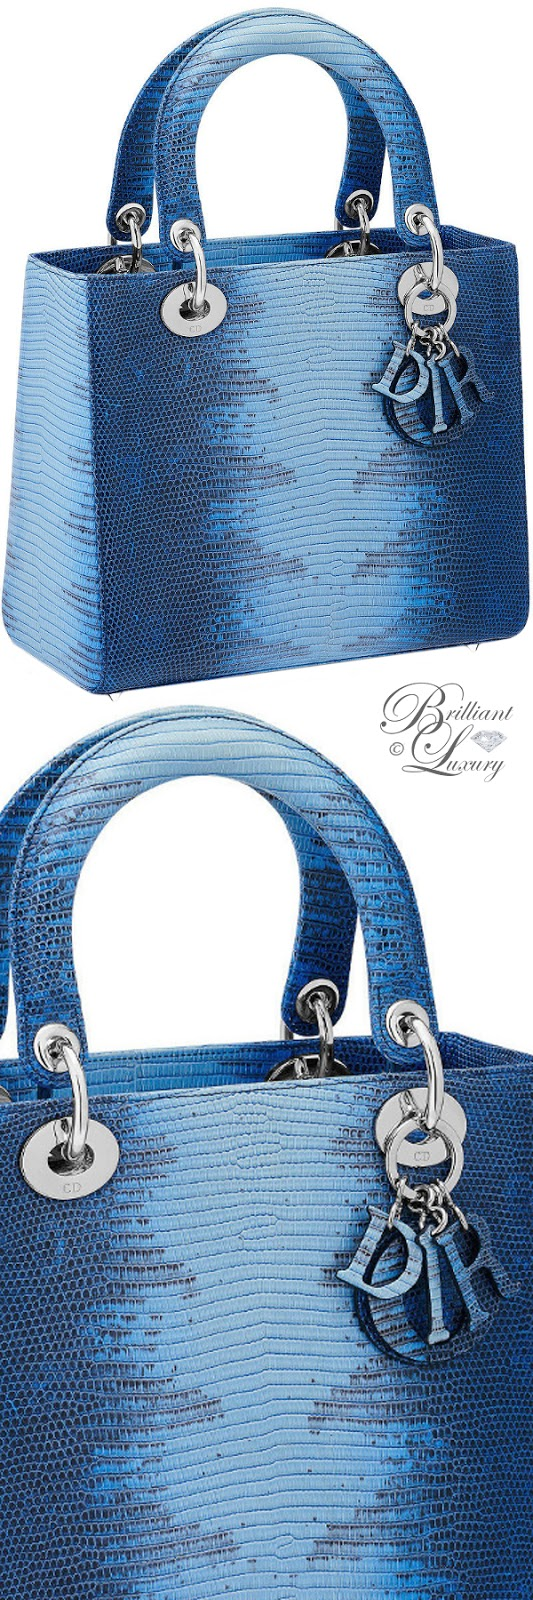 Brilliant Luxury ♦ Lady Dior bag in blue shaded lizard